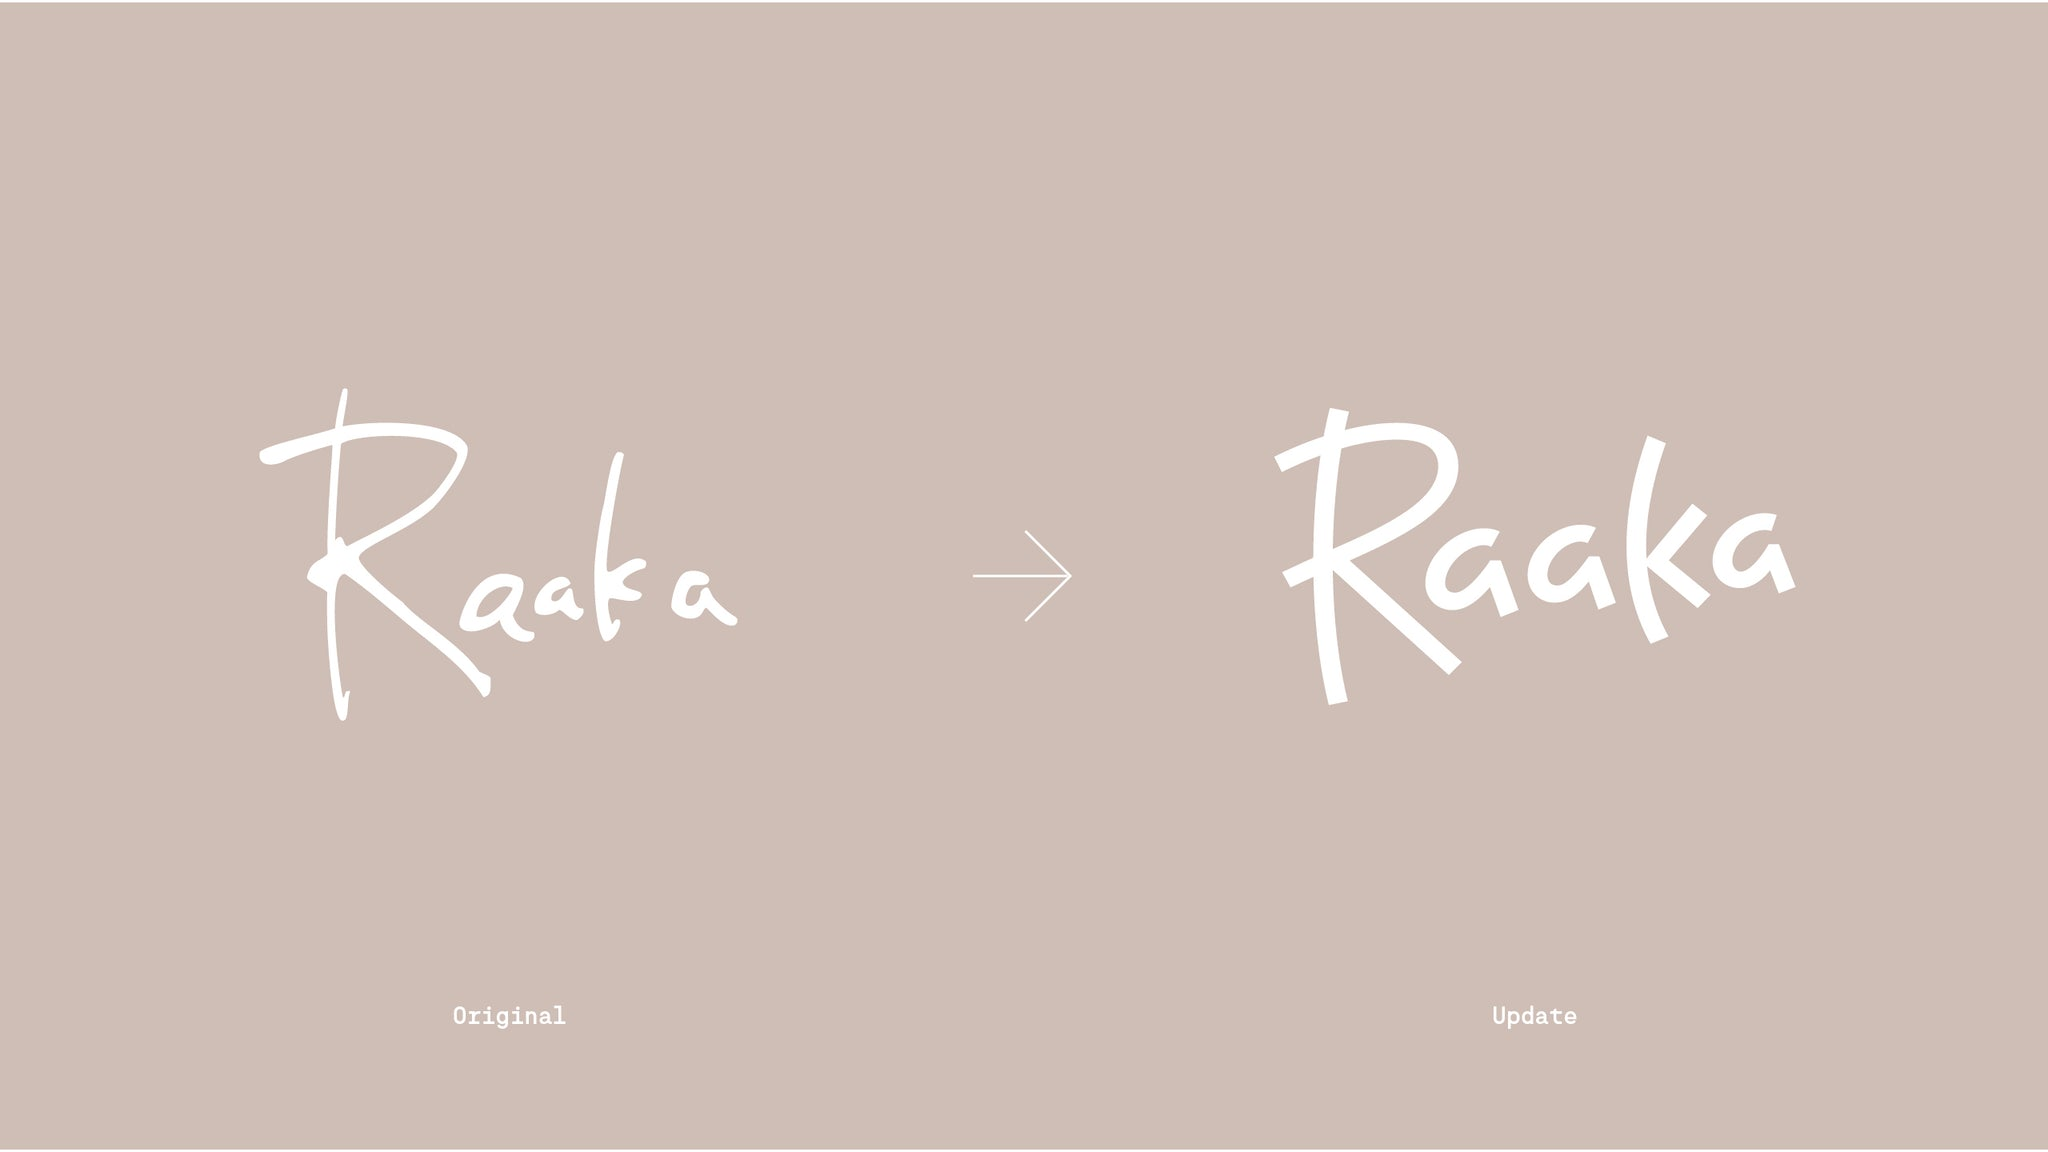 Raaka's logo evolution